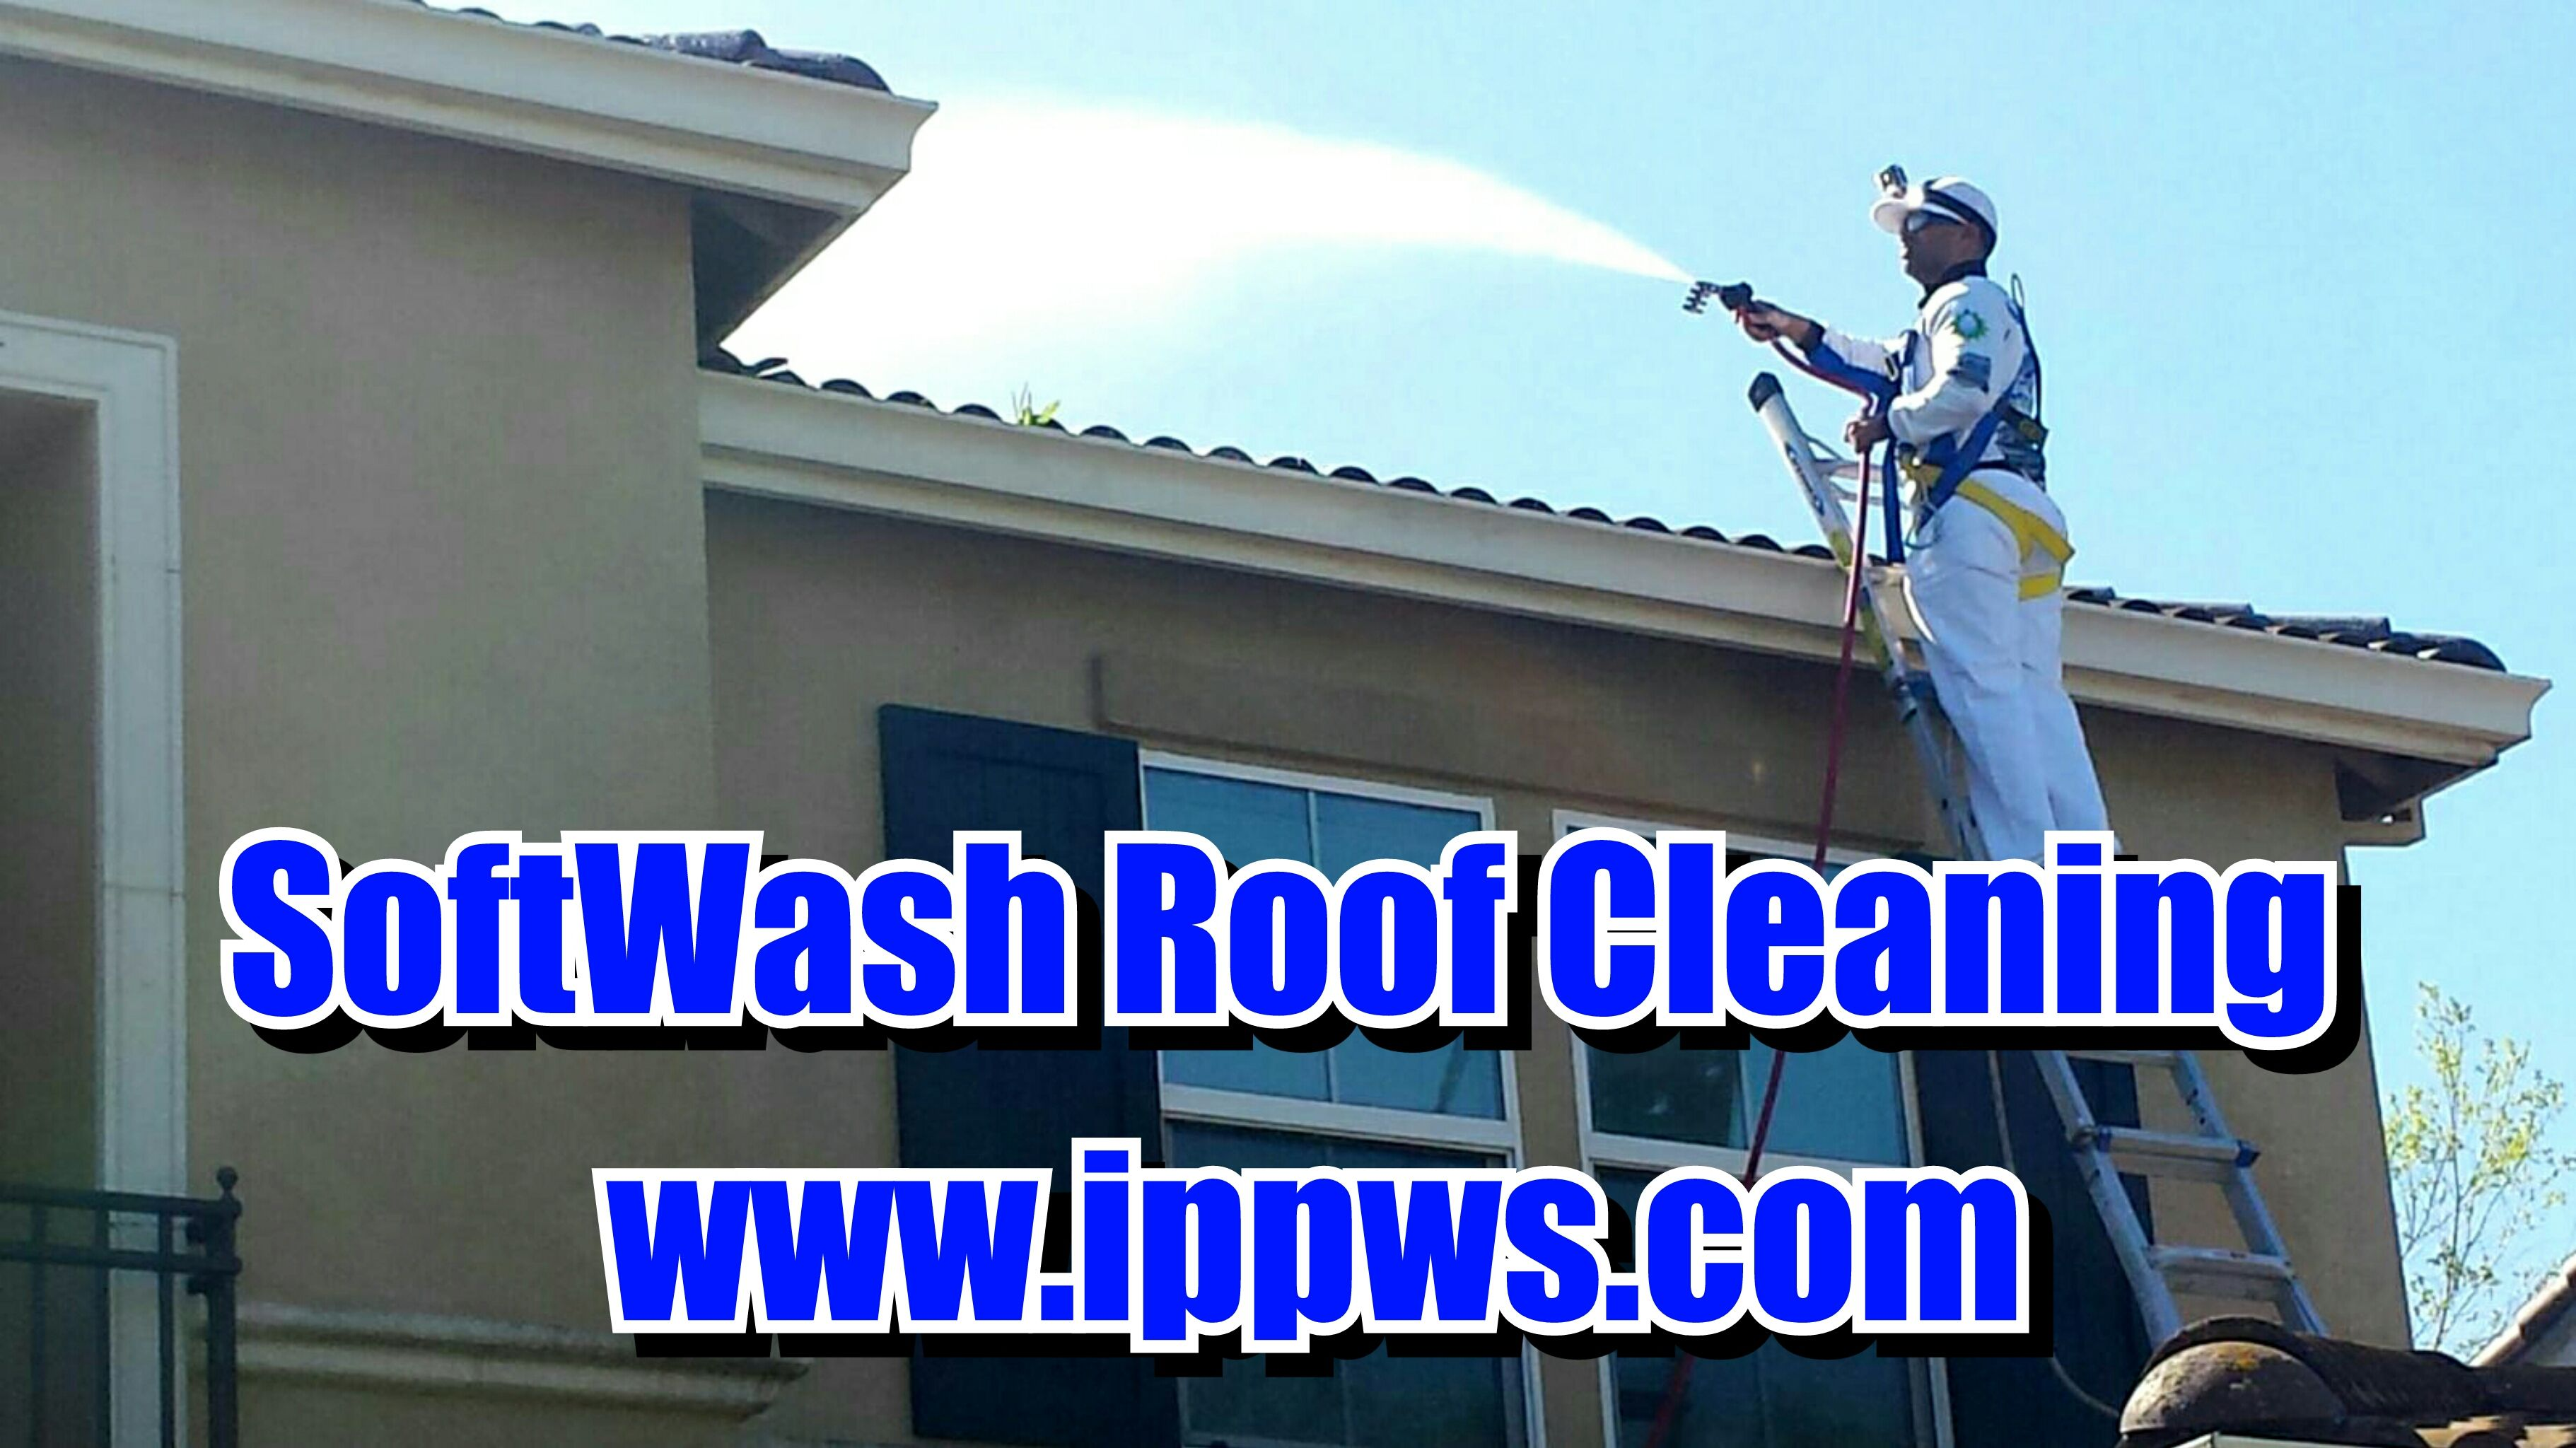 Softwash Roof Cleaning Service San Jose Ca Roof Cleaning Cleaning Service Roof